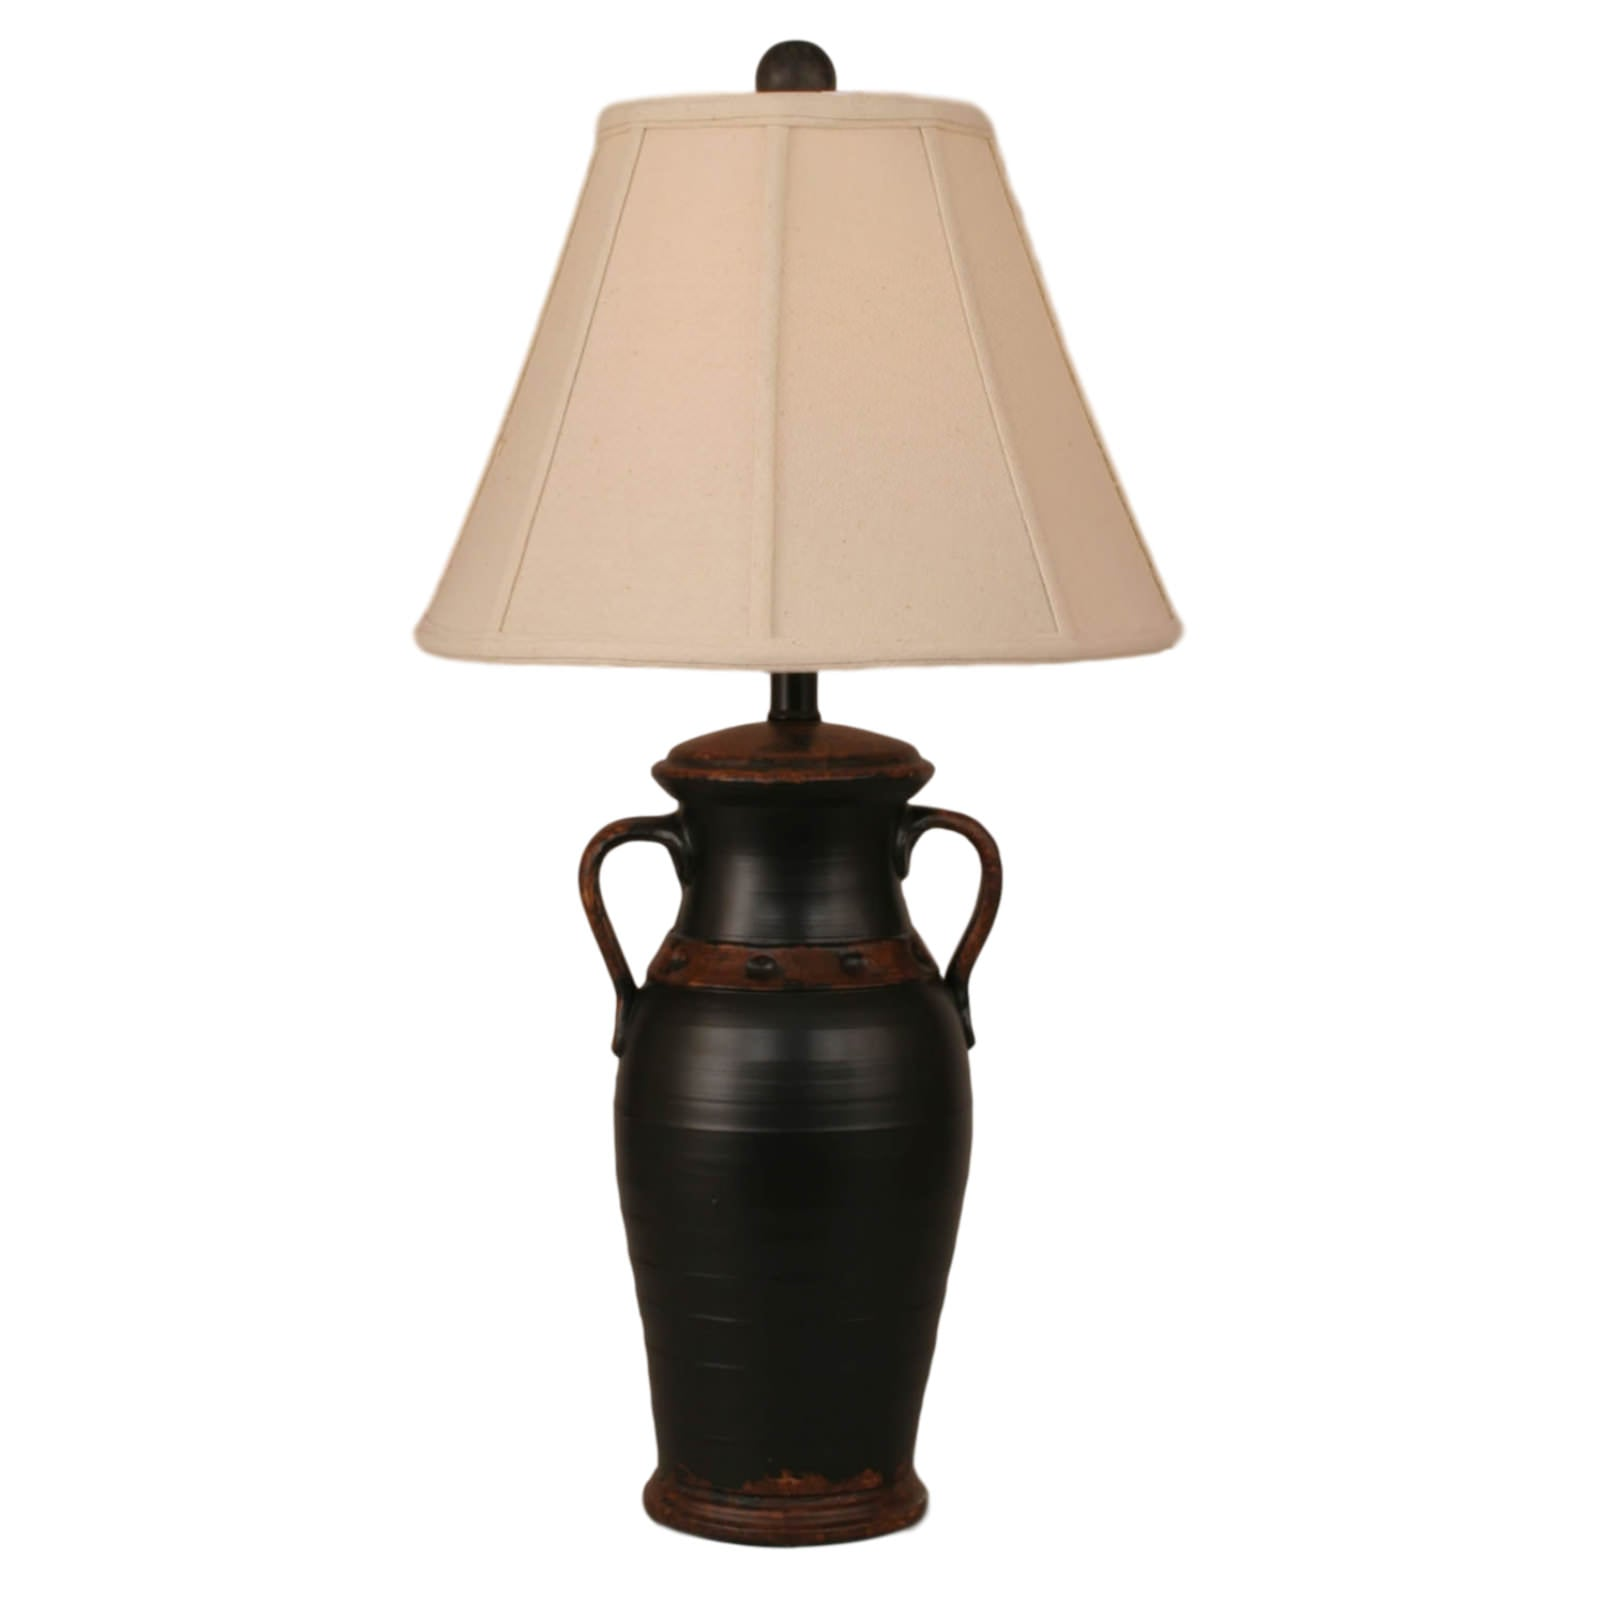 Aged Black Rustic Pot Table Lamp